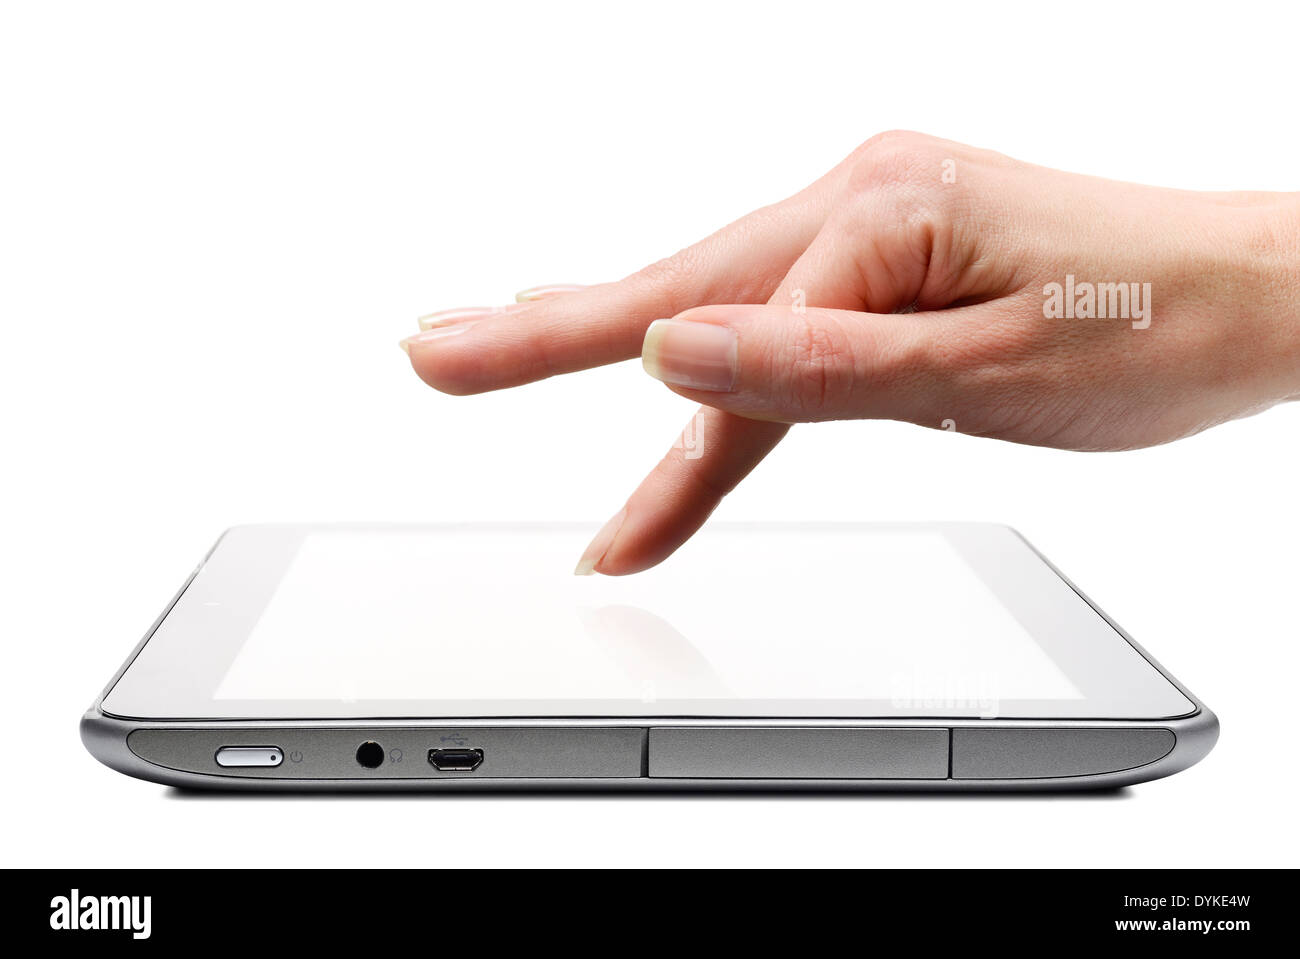 Tablet App Being Selected by a Finger on the Touchscreen, Cut Out, Close Up. - Stock Image